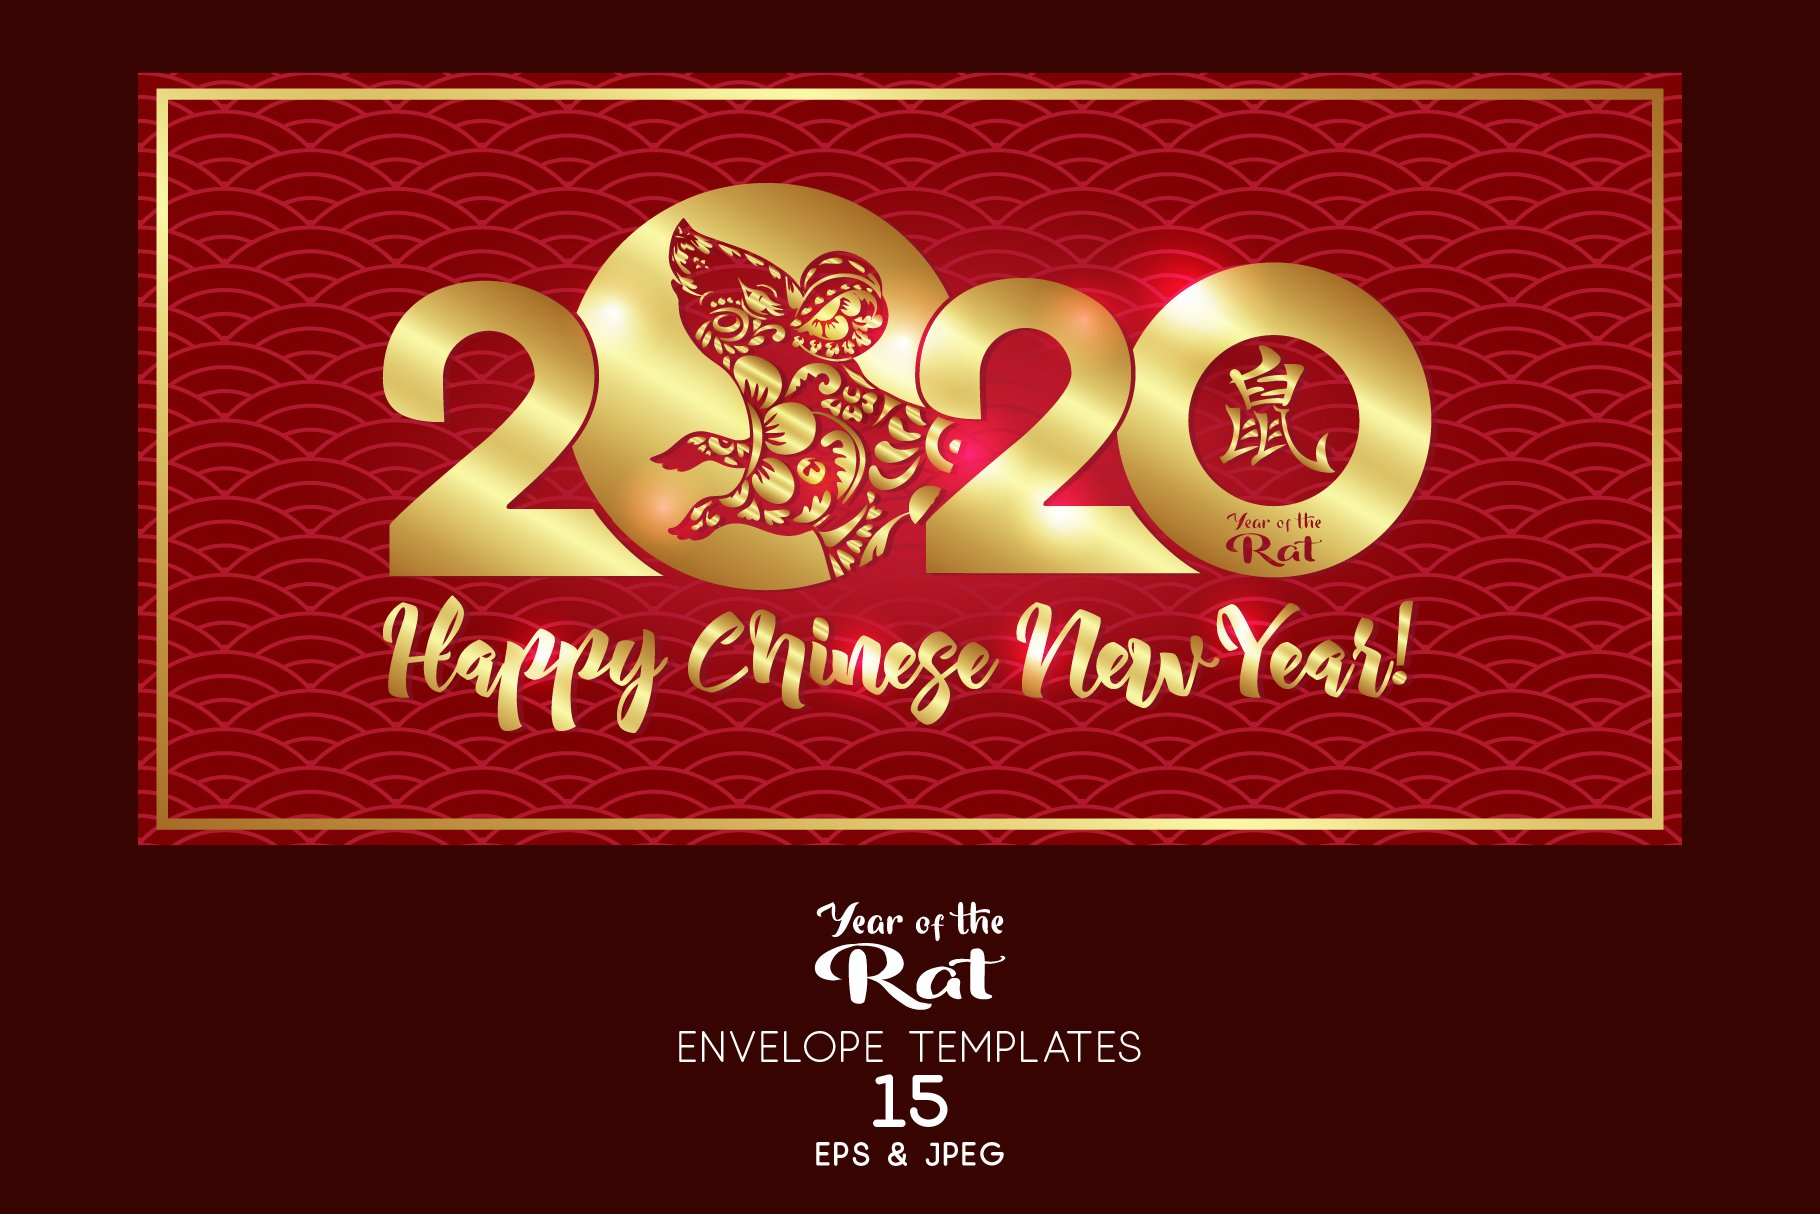 Chinese new year in 2020